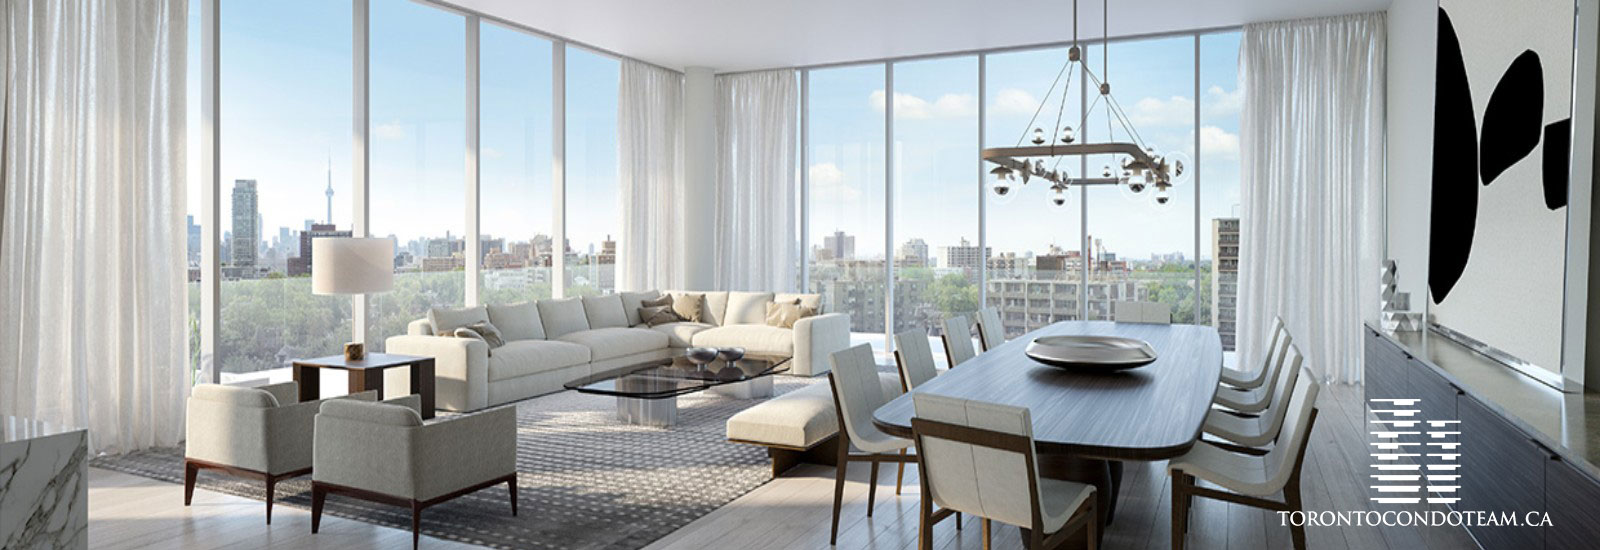 346 Davenport Road Condos For Sale